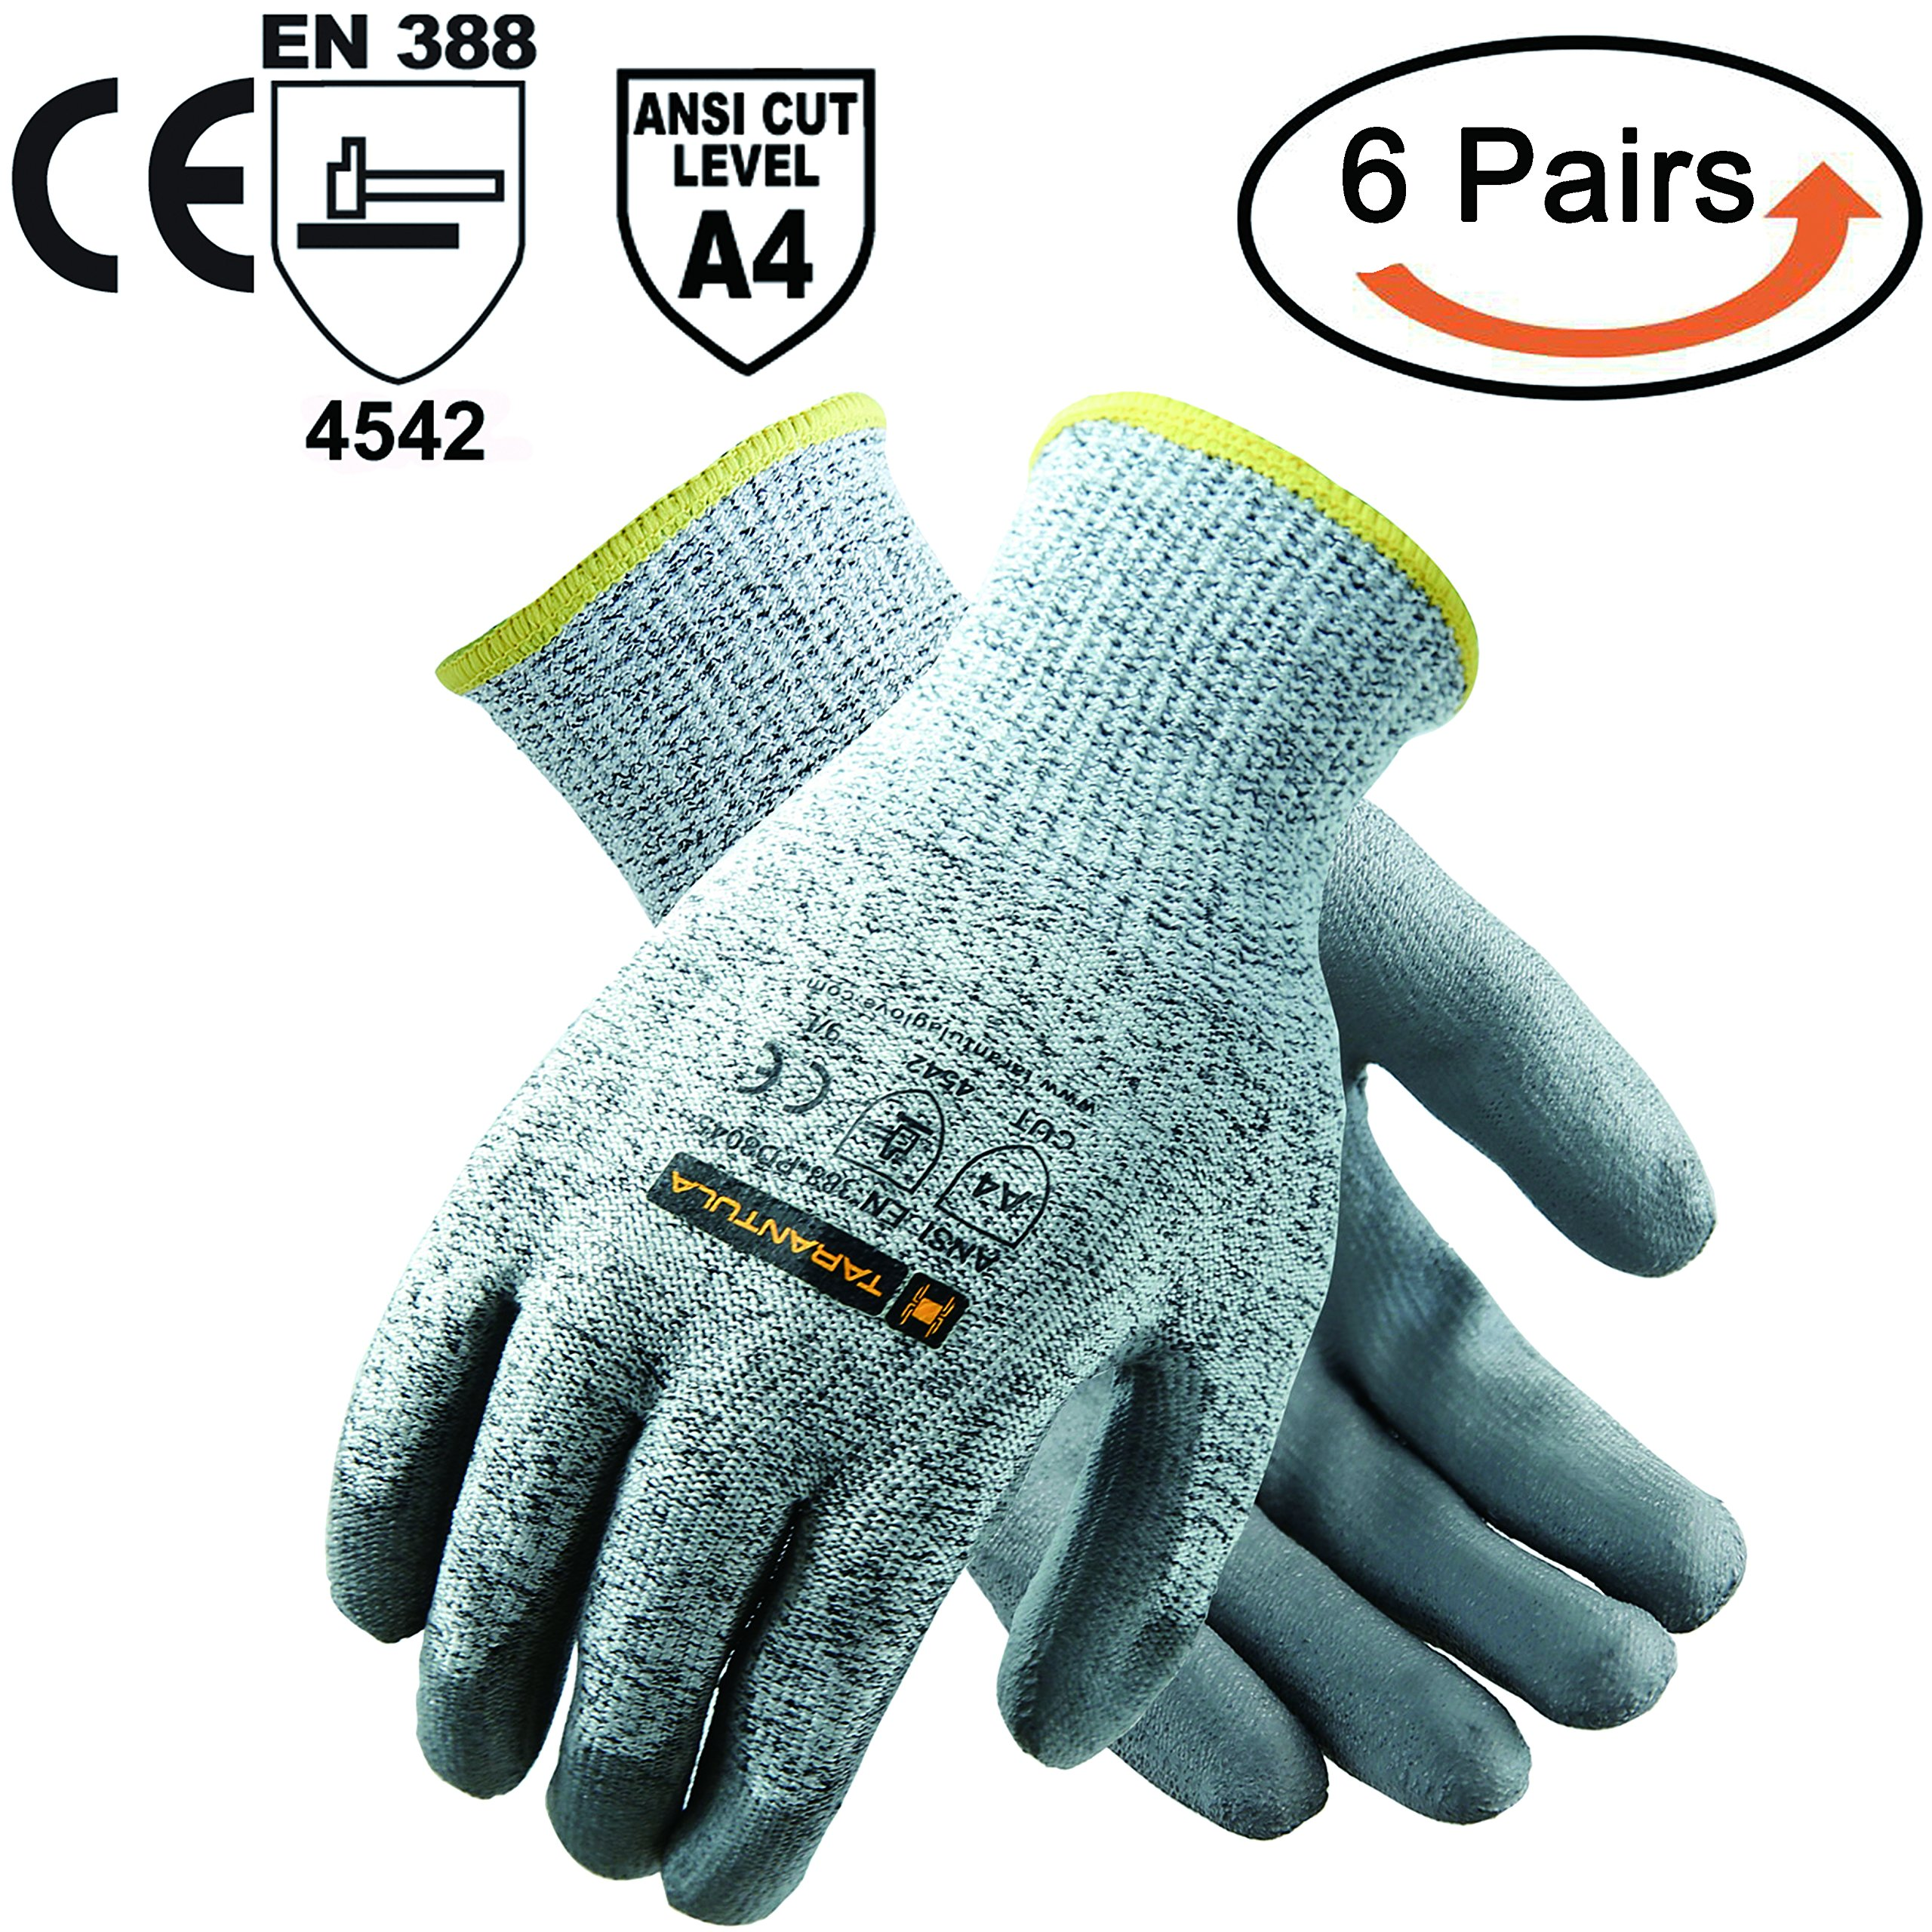 TARANTULA Cut Resistant Gloves, 13 gauge HPPE shell with black PU coated on palm Salt and Pepper Cut Resistance Level 5 Shell,6 Pair Per Pack